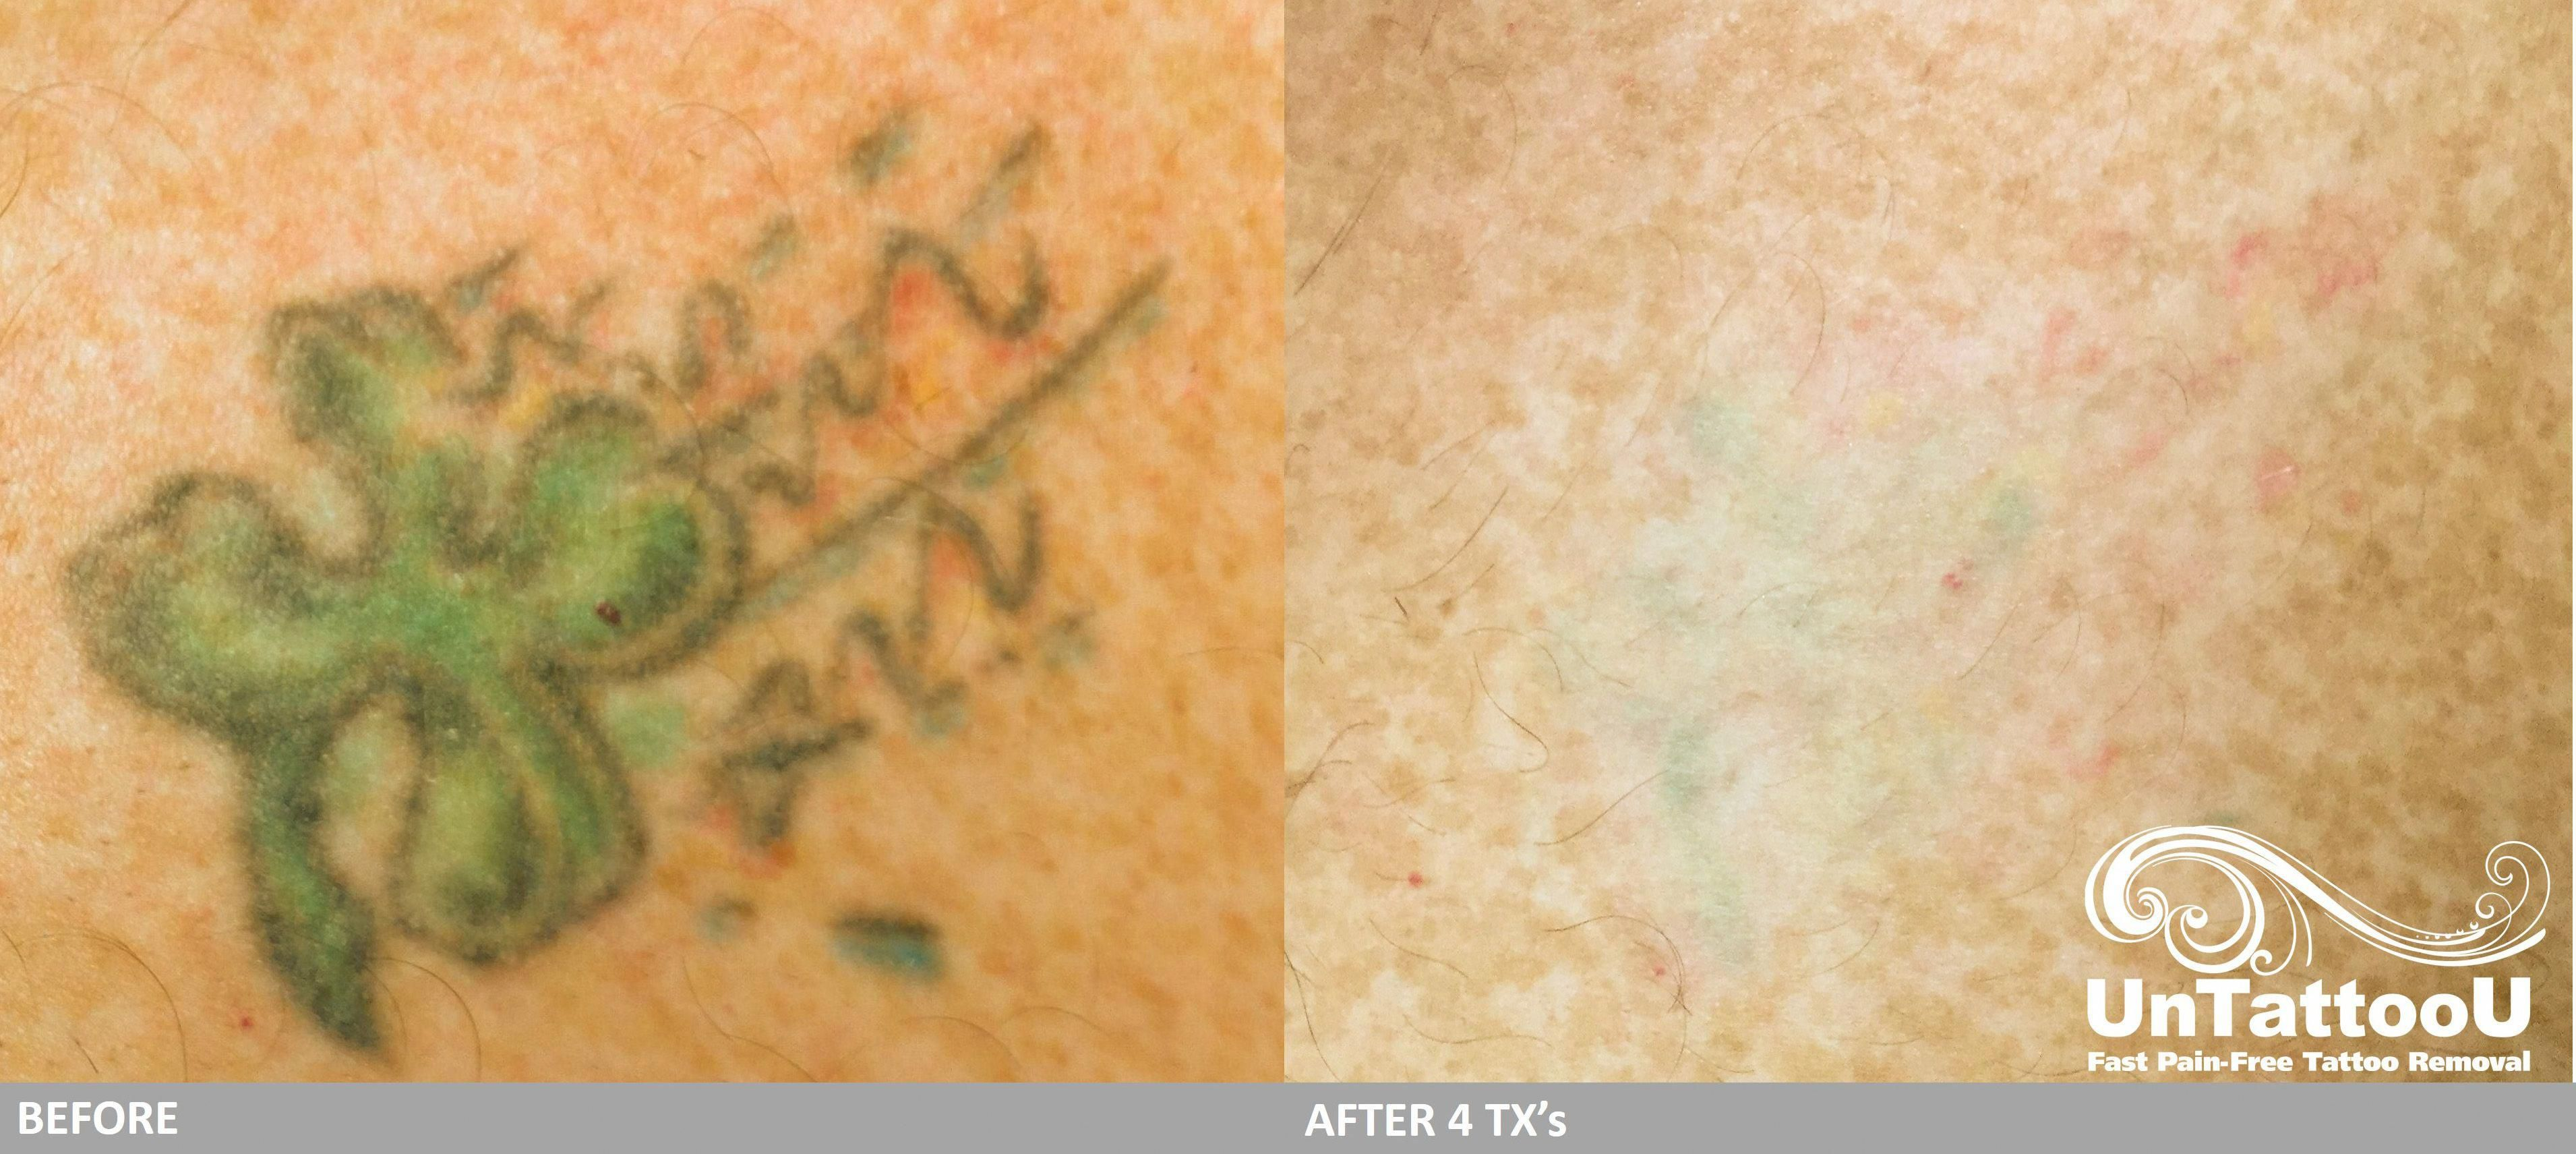 UnTattooU Laser Tattoo Removal Before & After 4